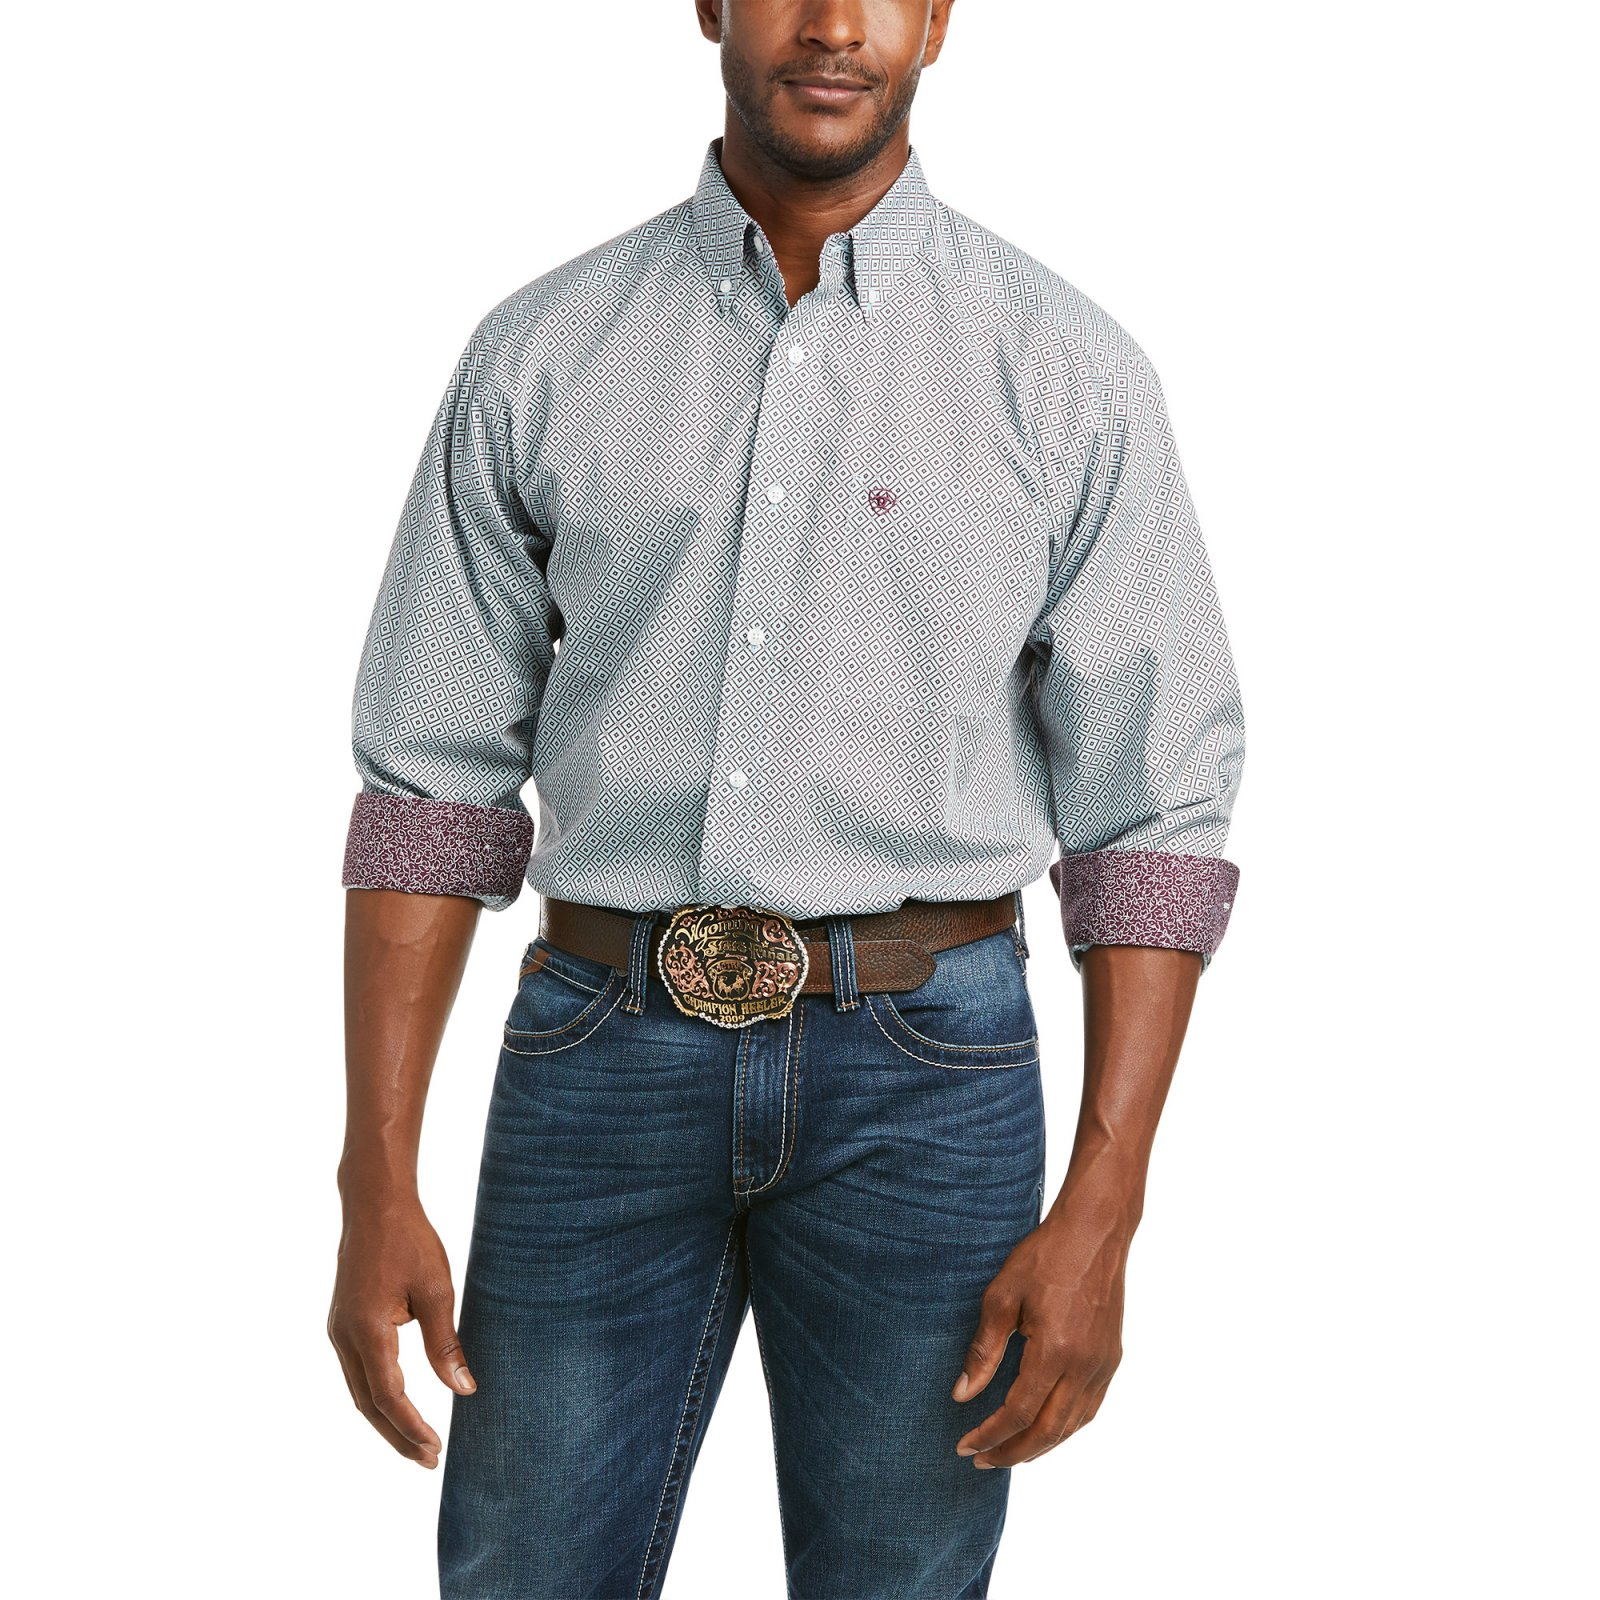 Wrinkle Free Warren Classic Fit Shirt from Ariat